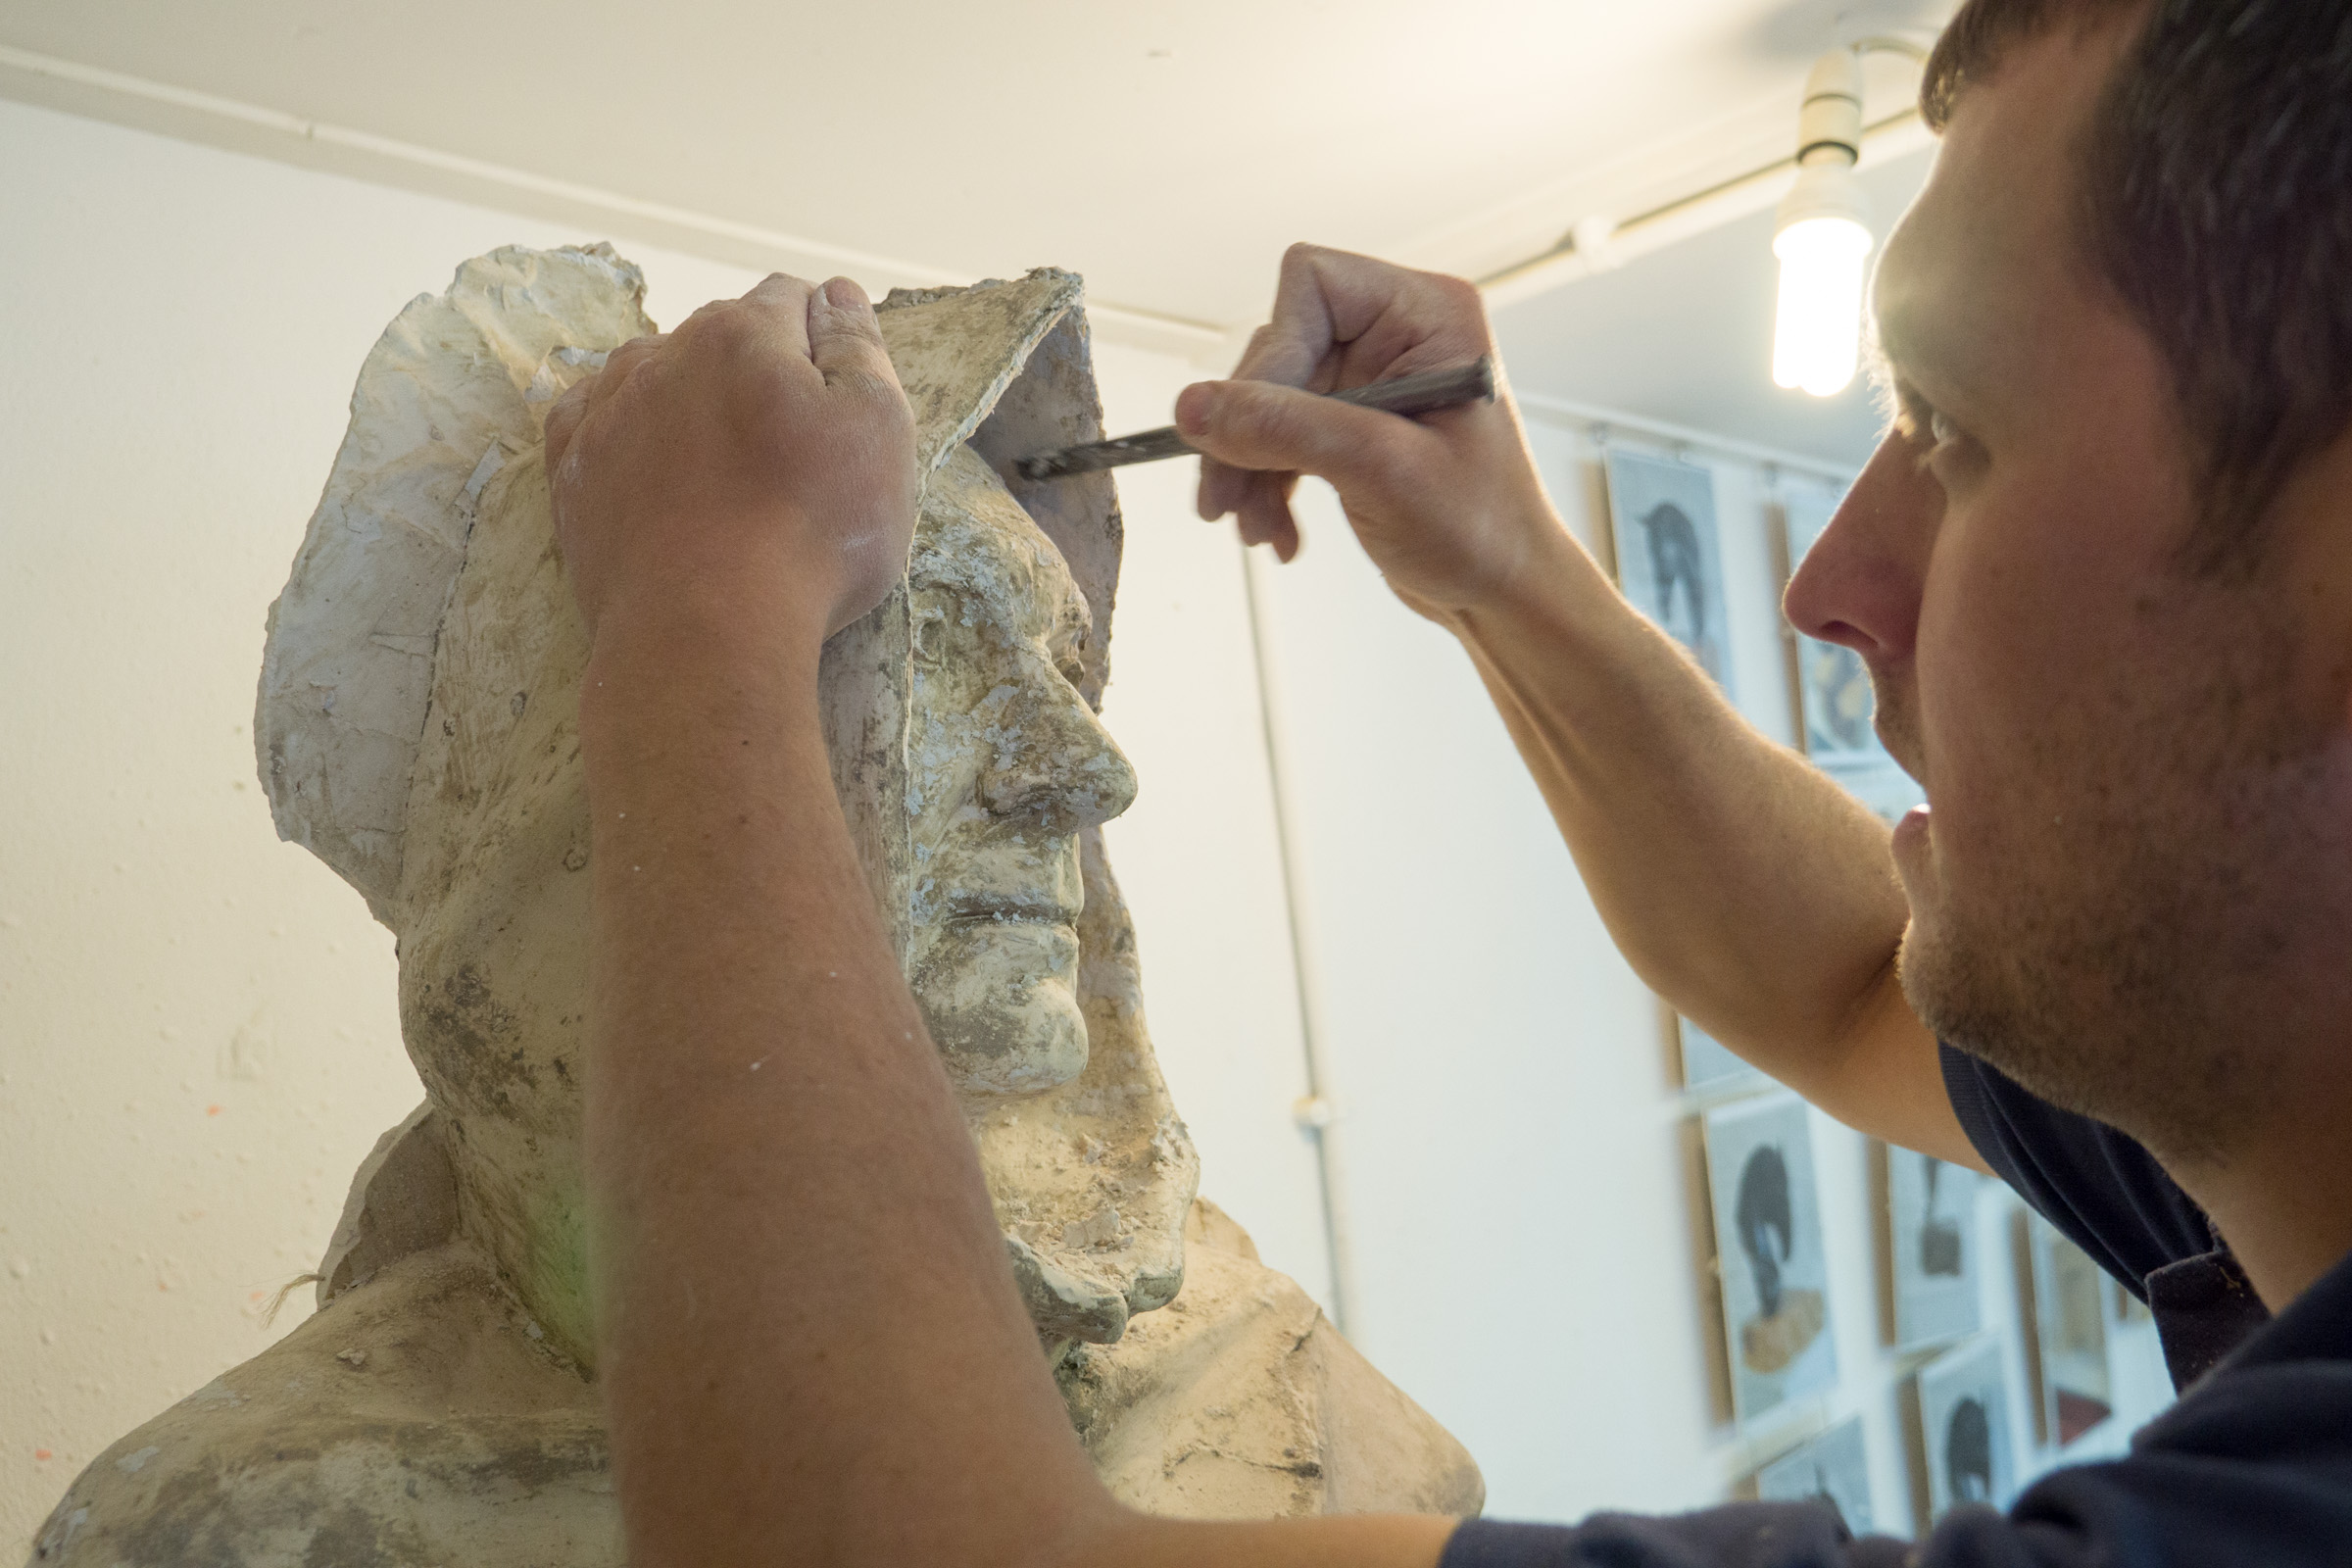 Joseph working plaster model - photo by Paul Harris